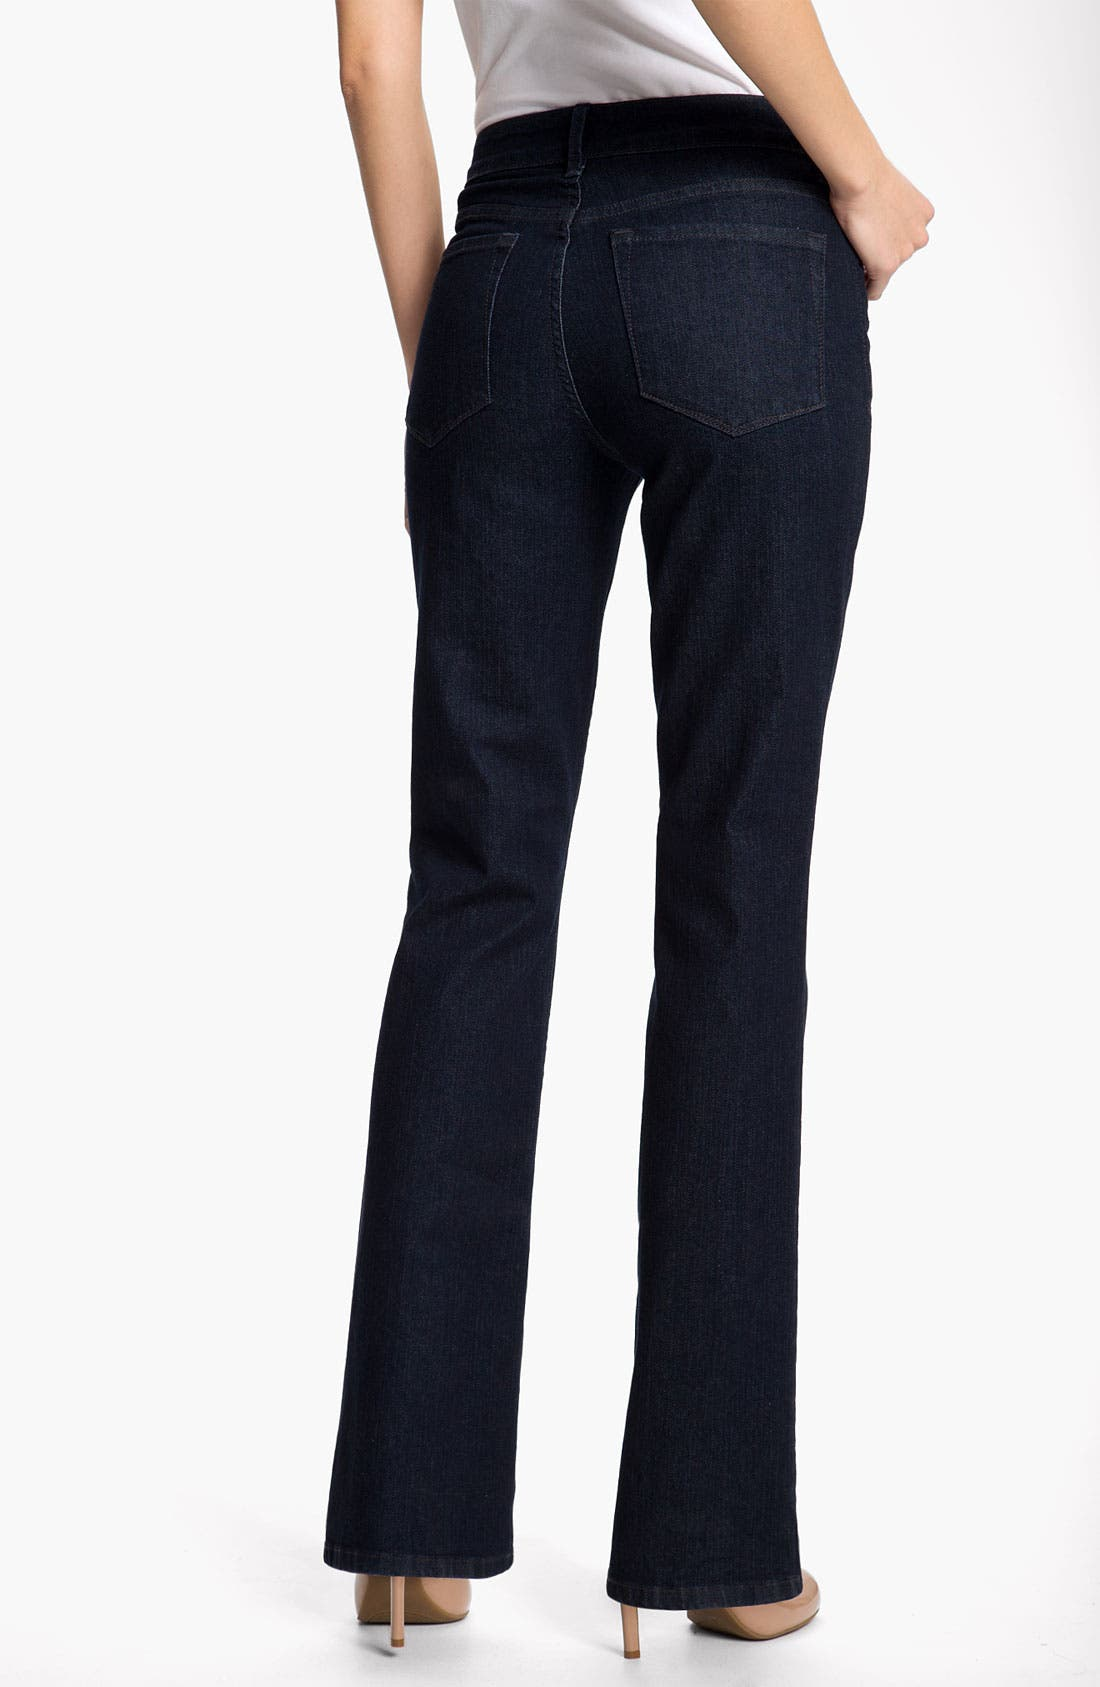 Alternate Image 2  - NYDJ 'Barbara' Stretch Bootcut Jeans (Dark Enzyme) (Petite)